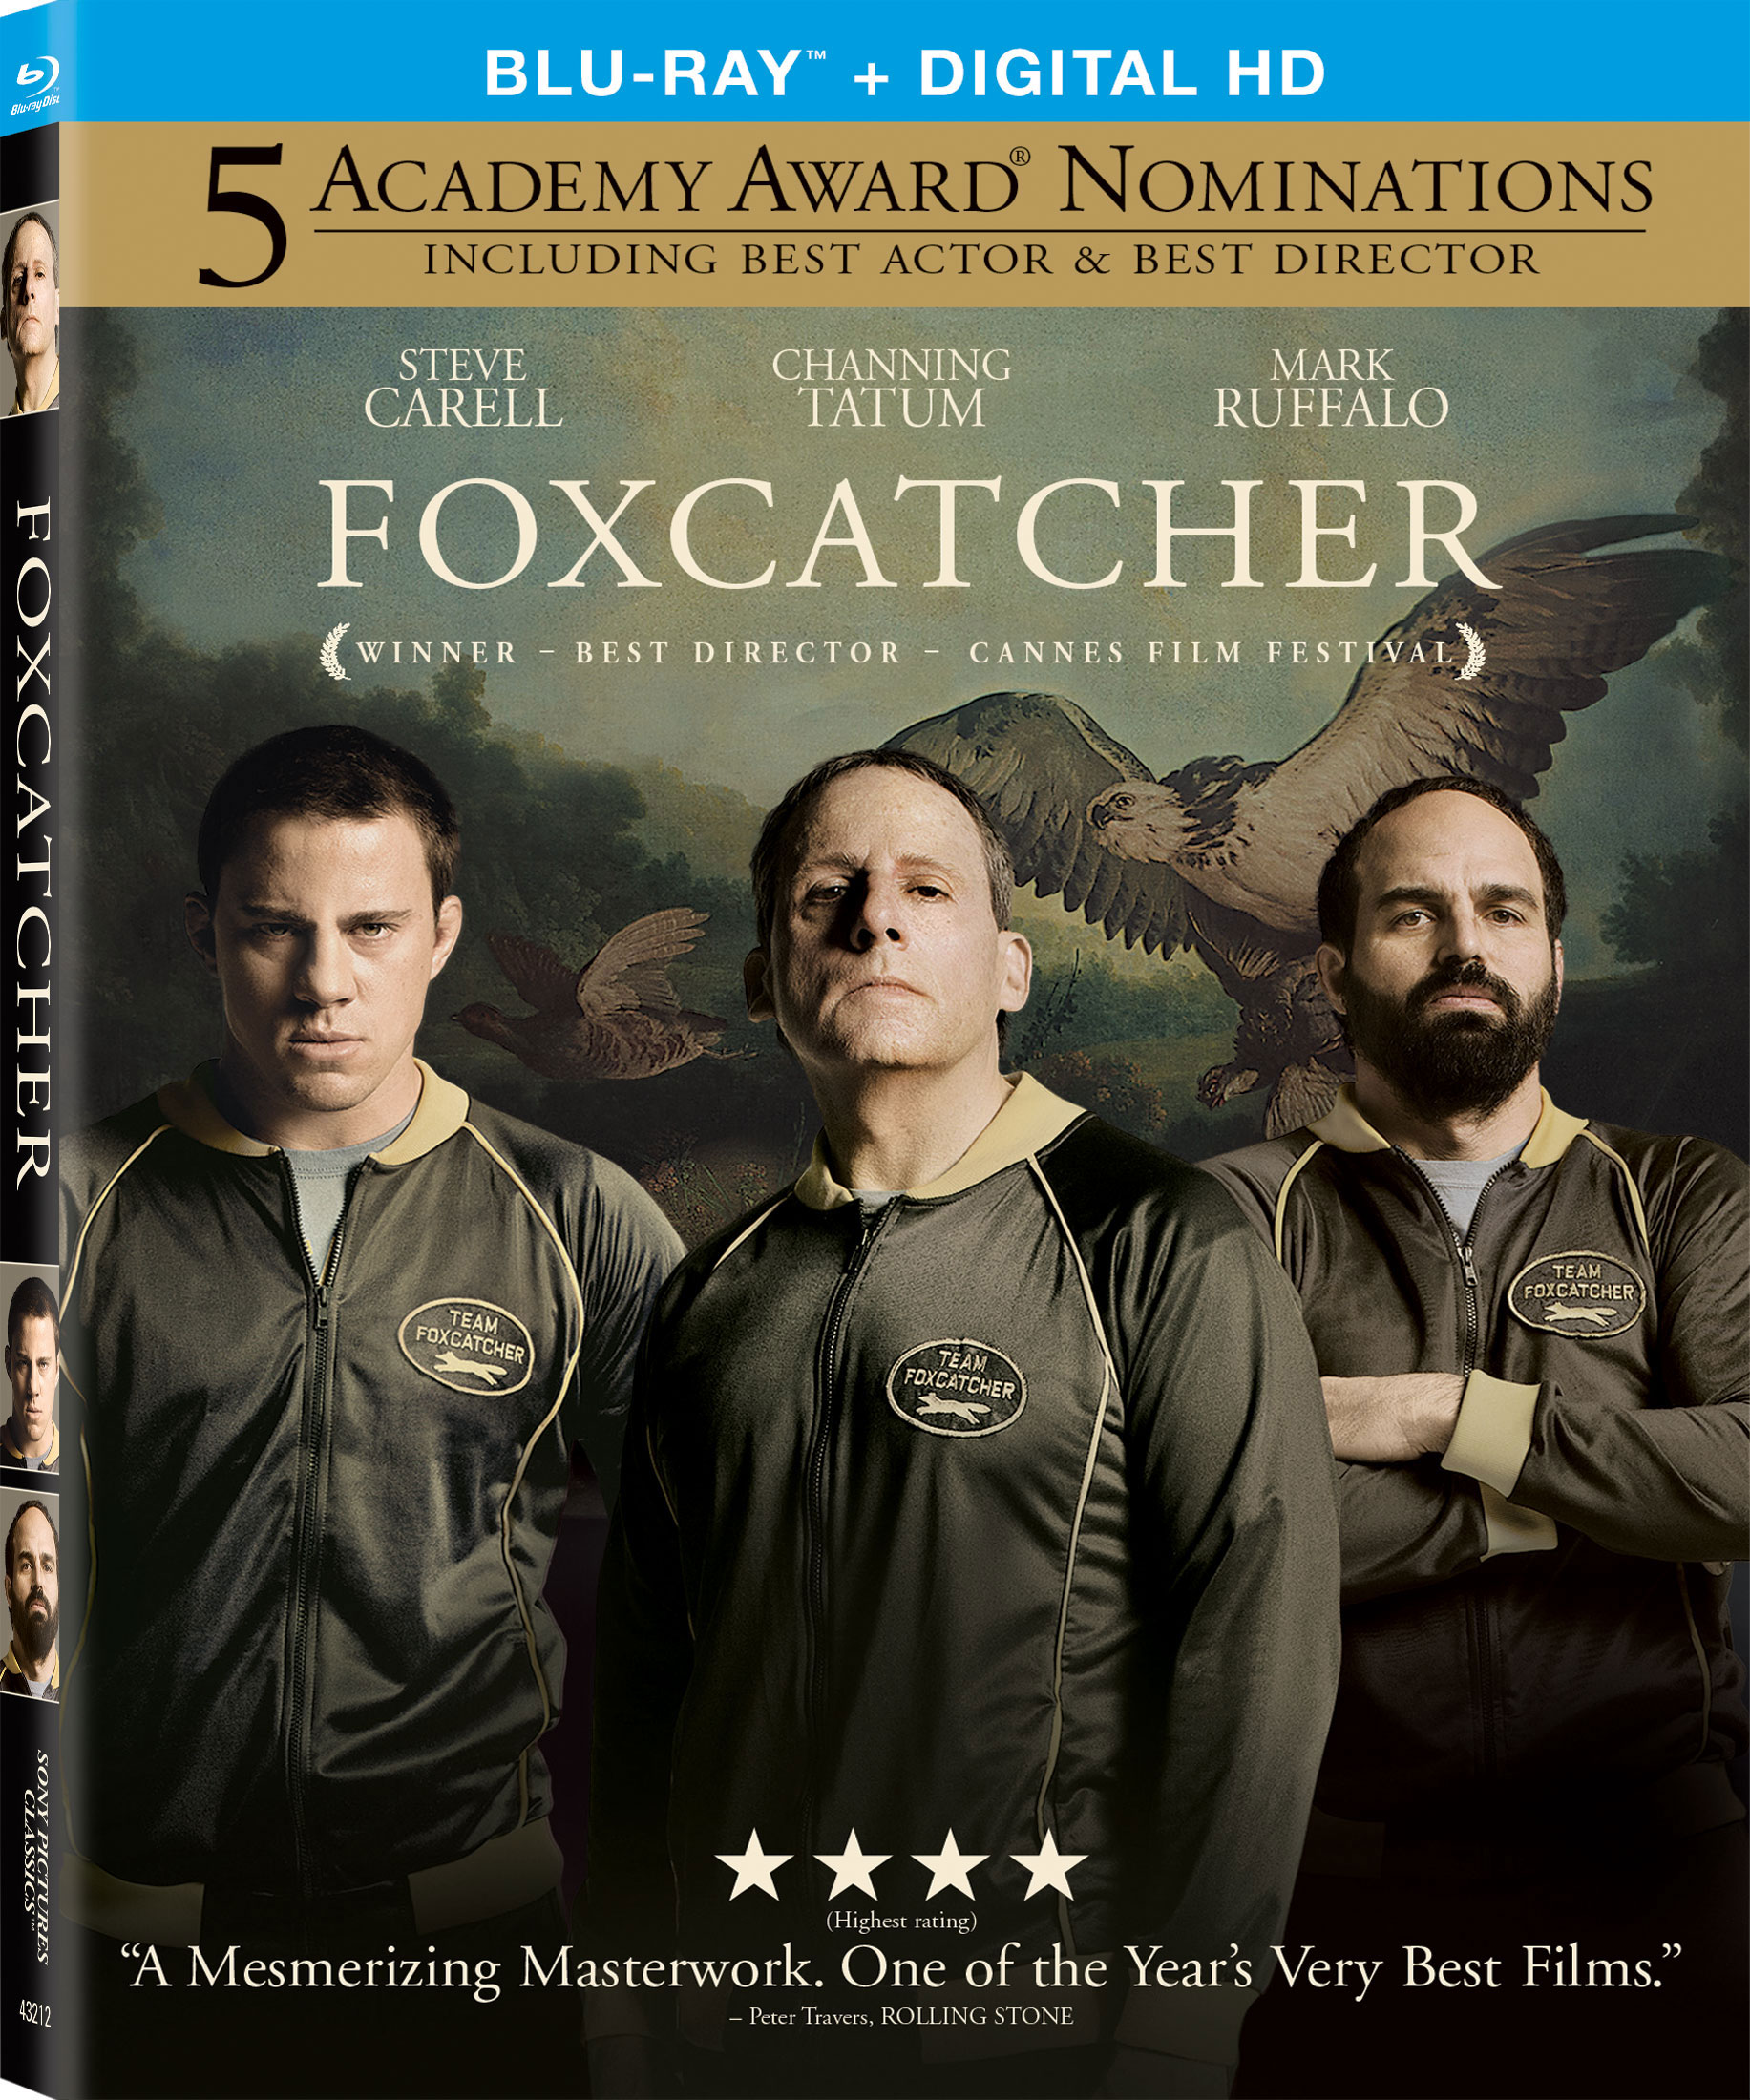 Foxcatcher Blu-ray Cover